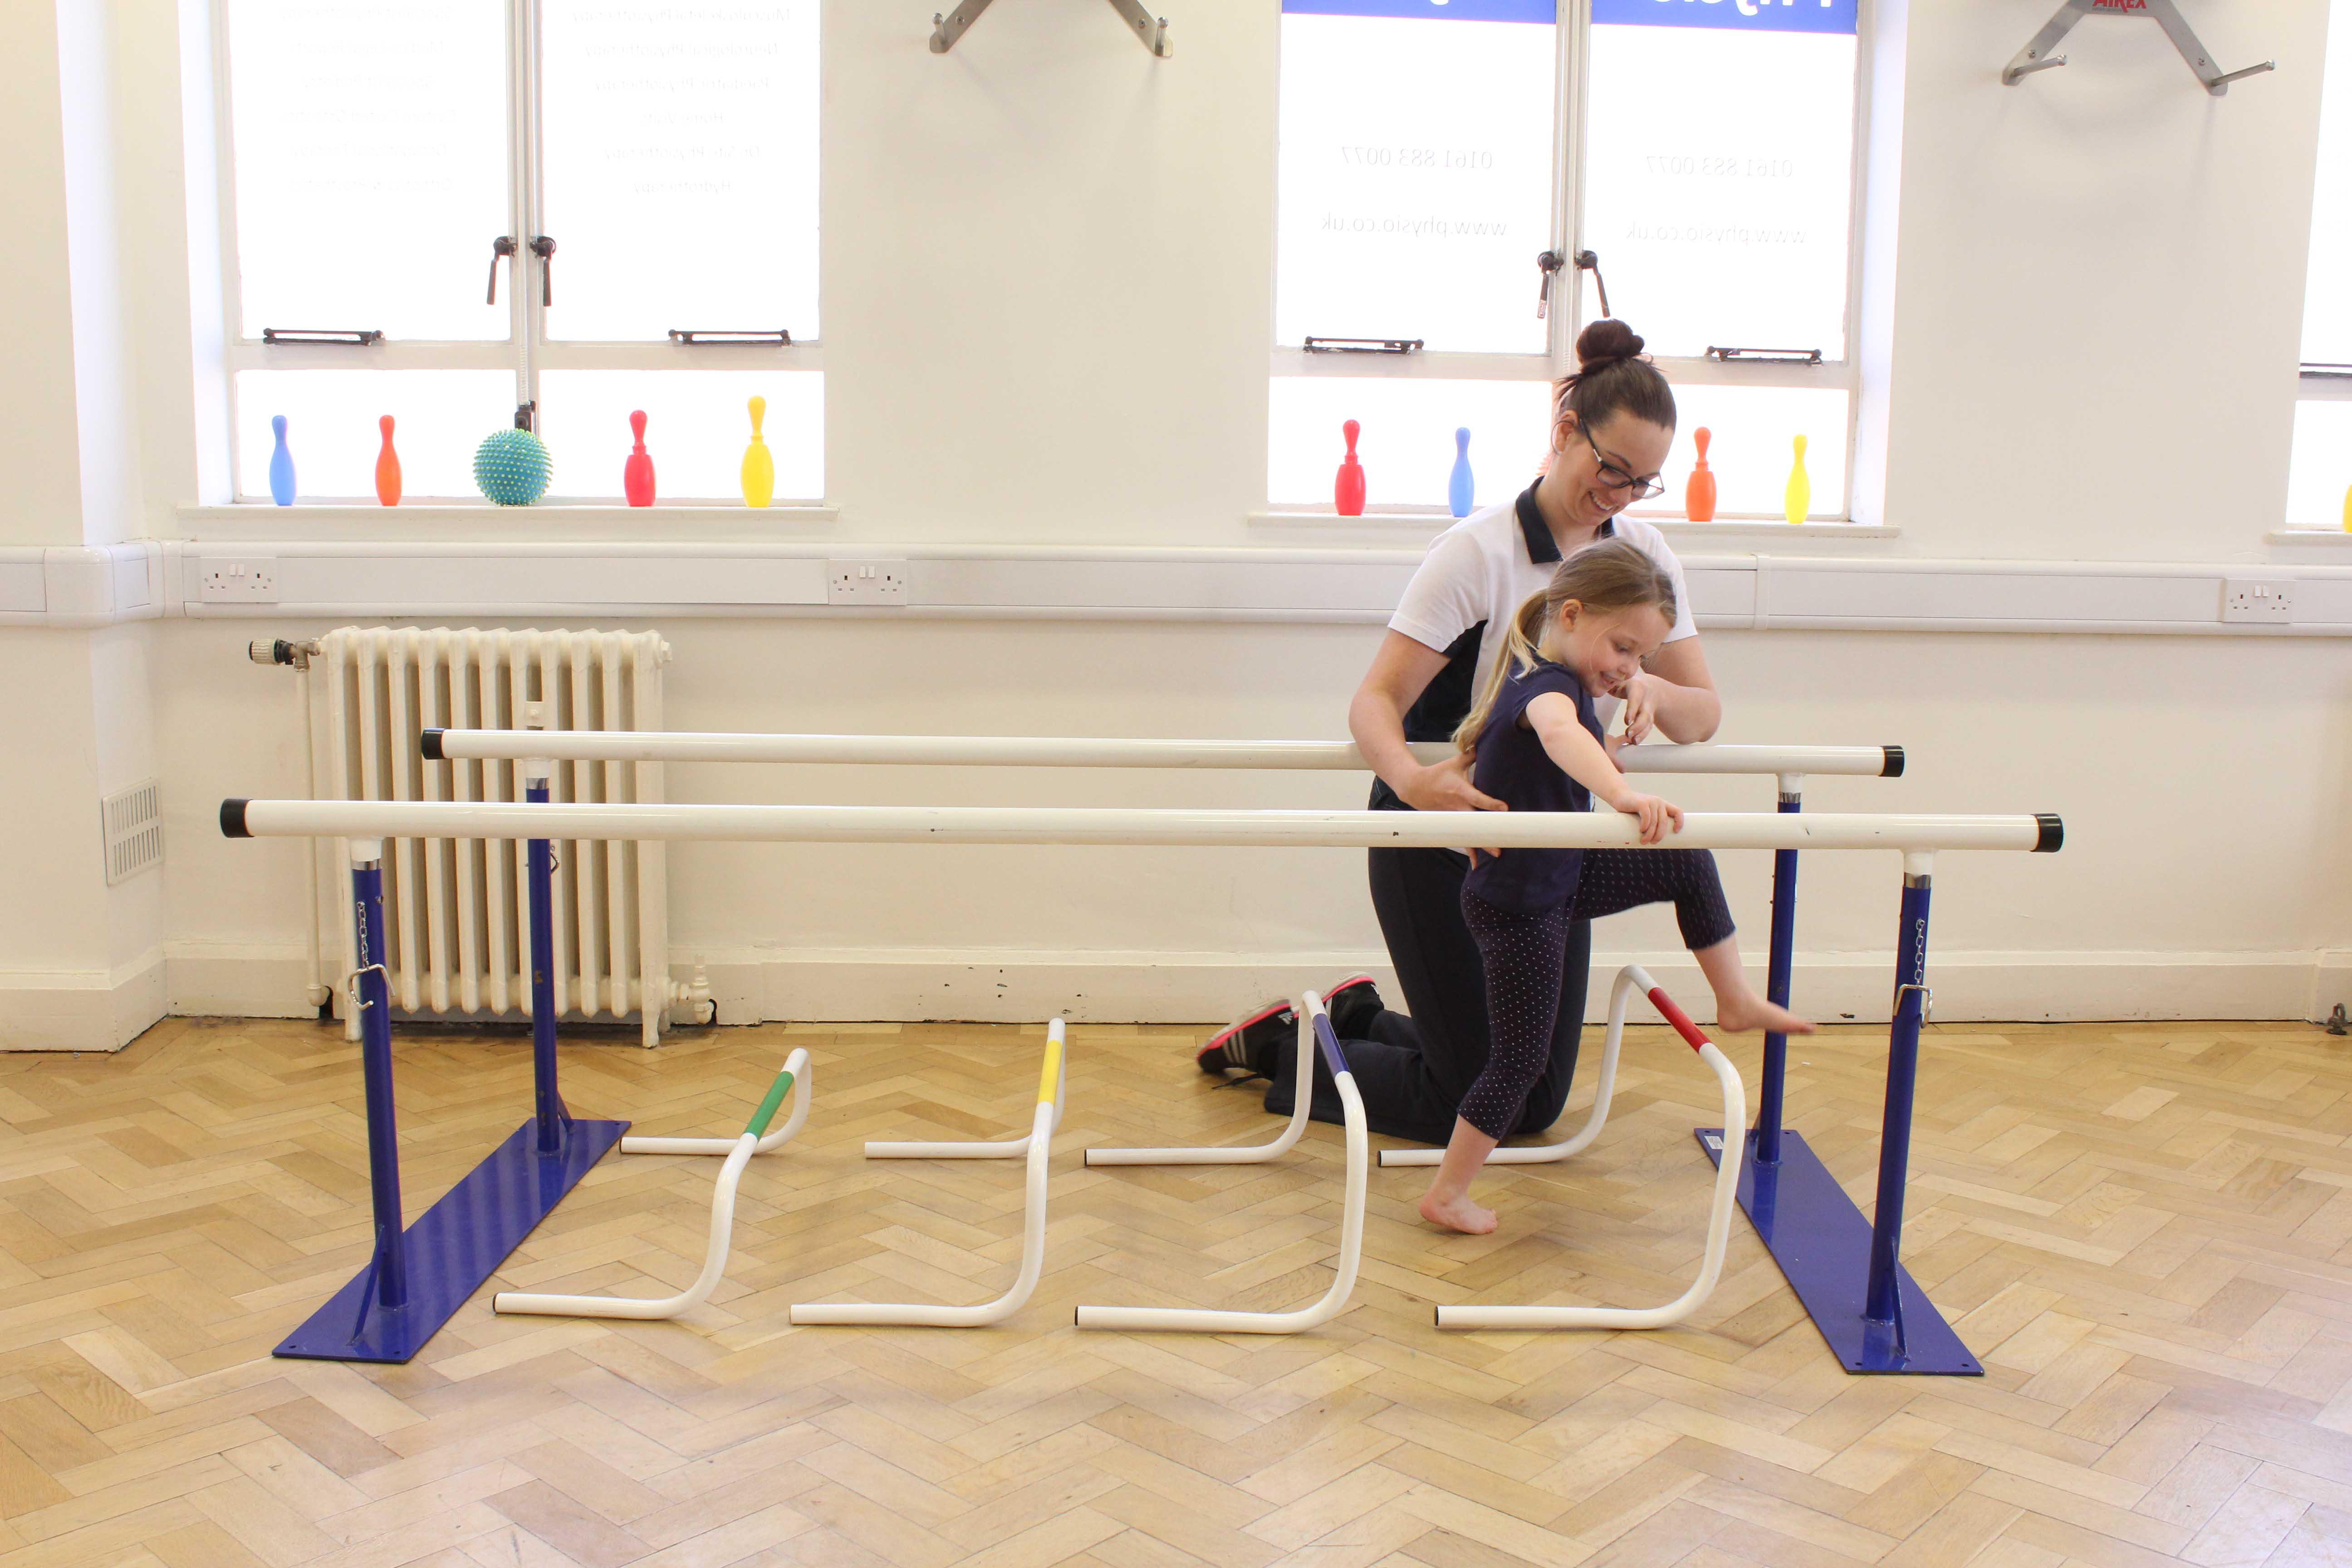 Paediatric neuro physiotherapist supervising mobility exercises between the parallel bars